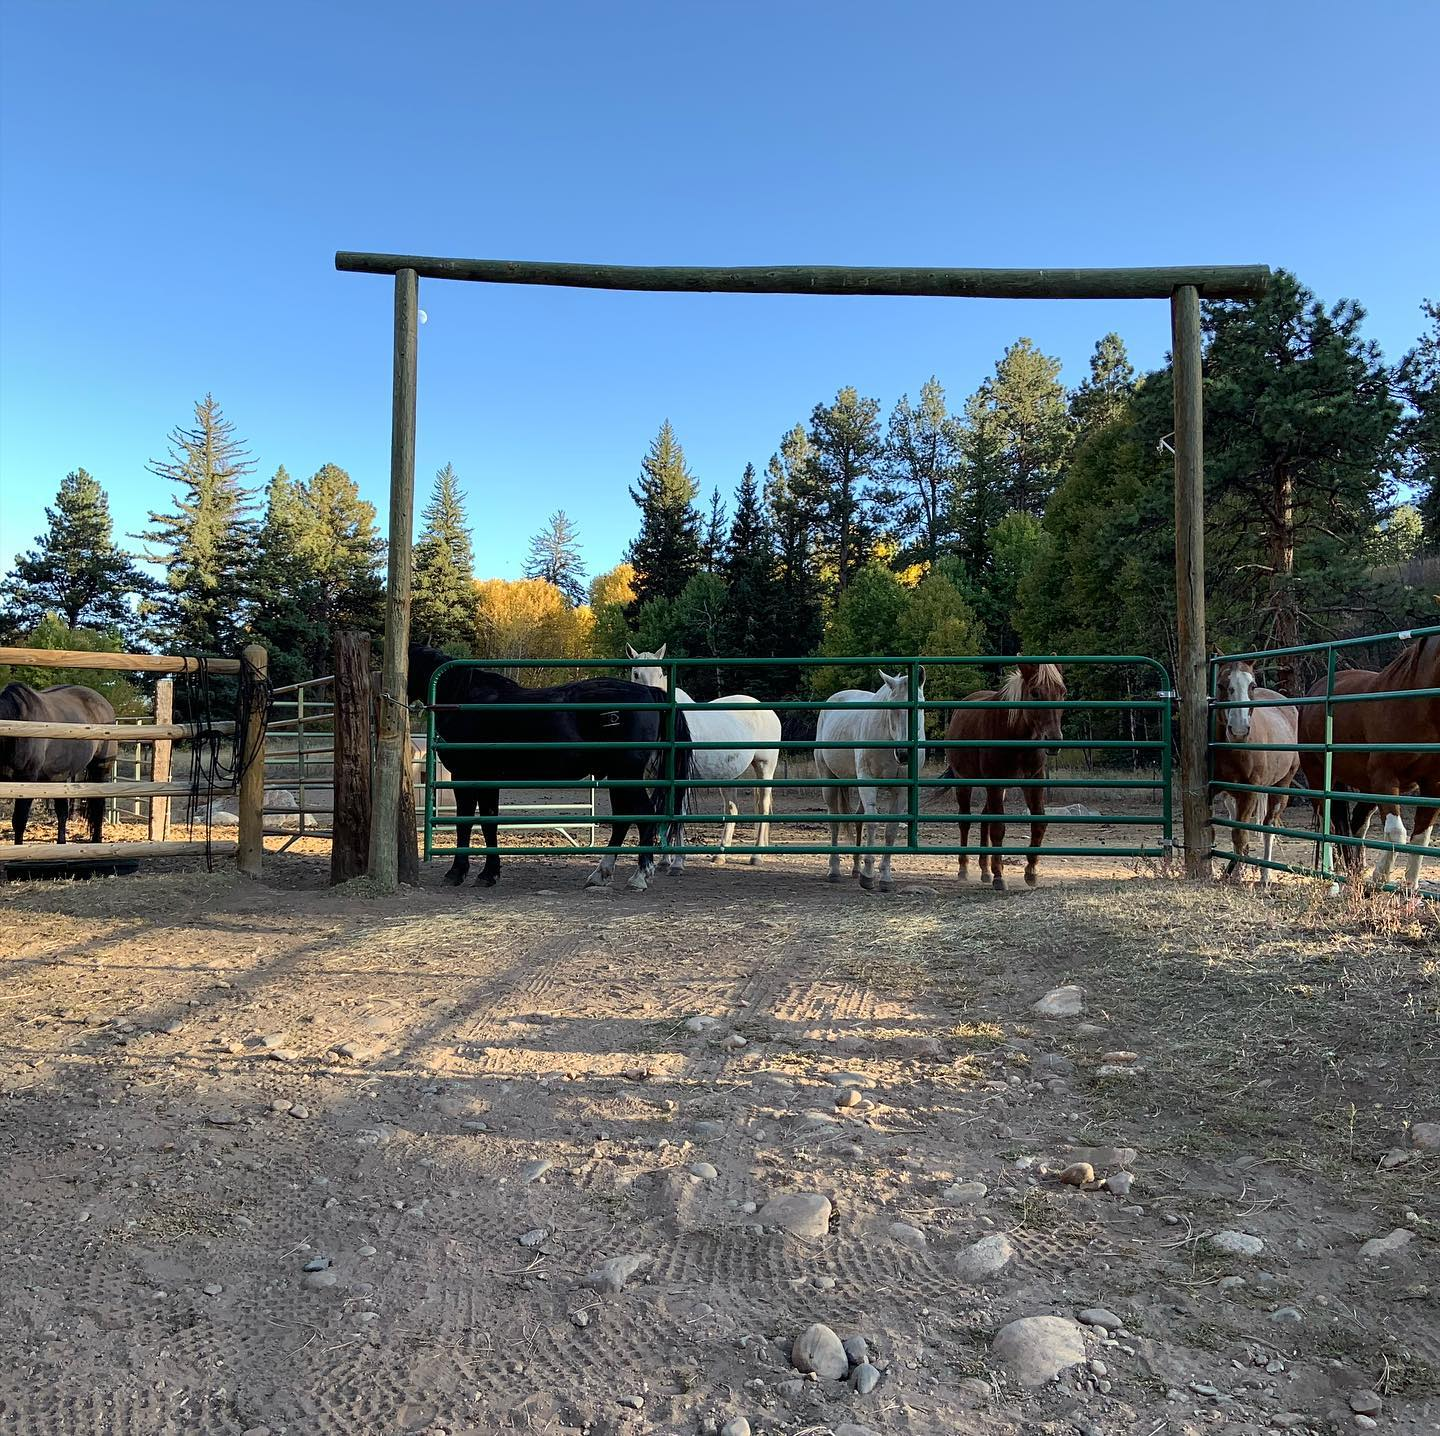 Image of horses at the North Fork Ranch in Shawnee, Colorado